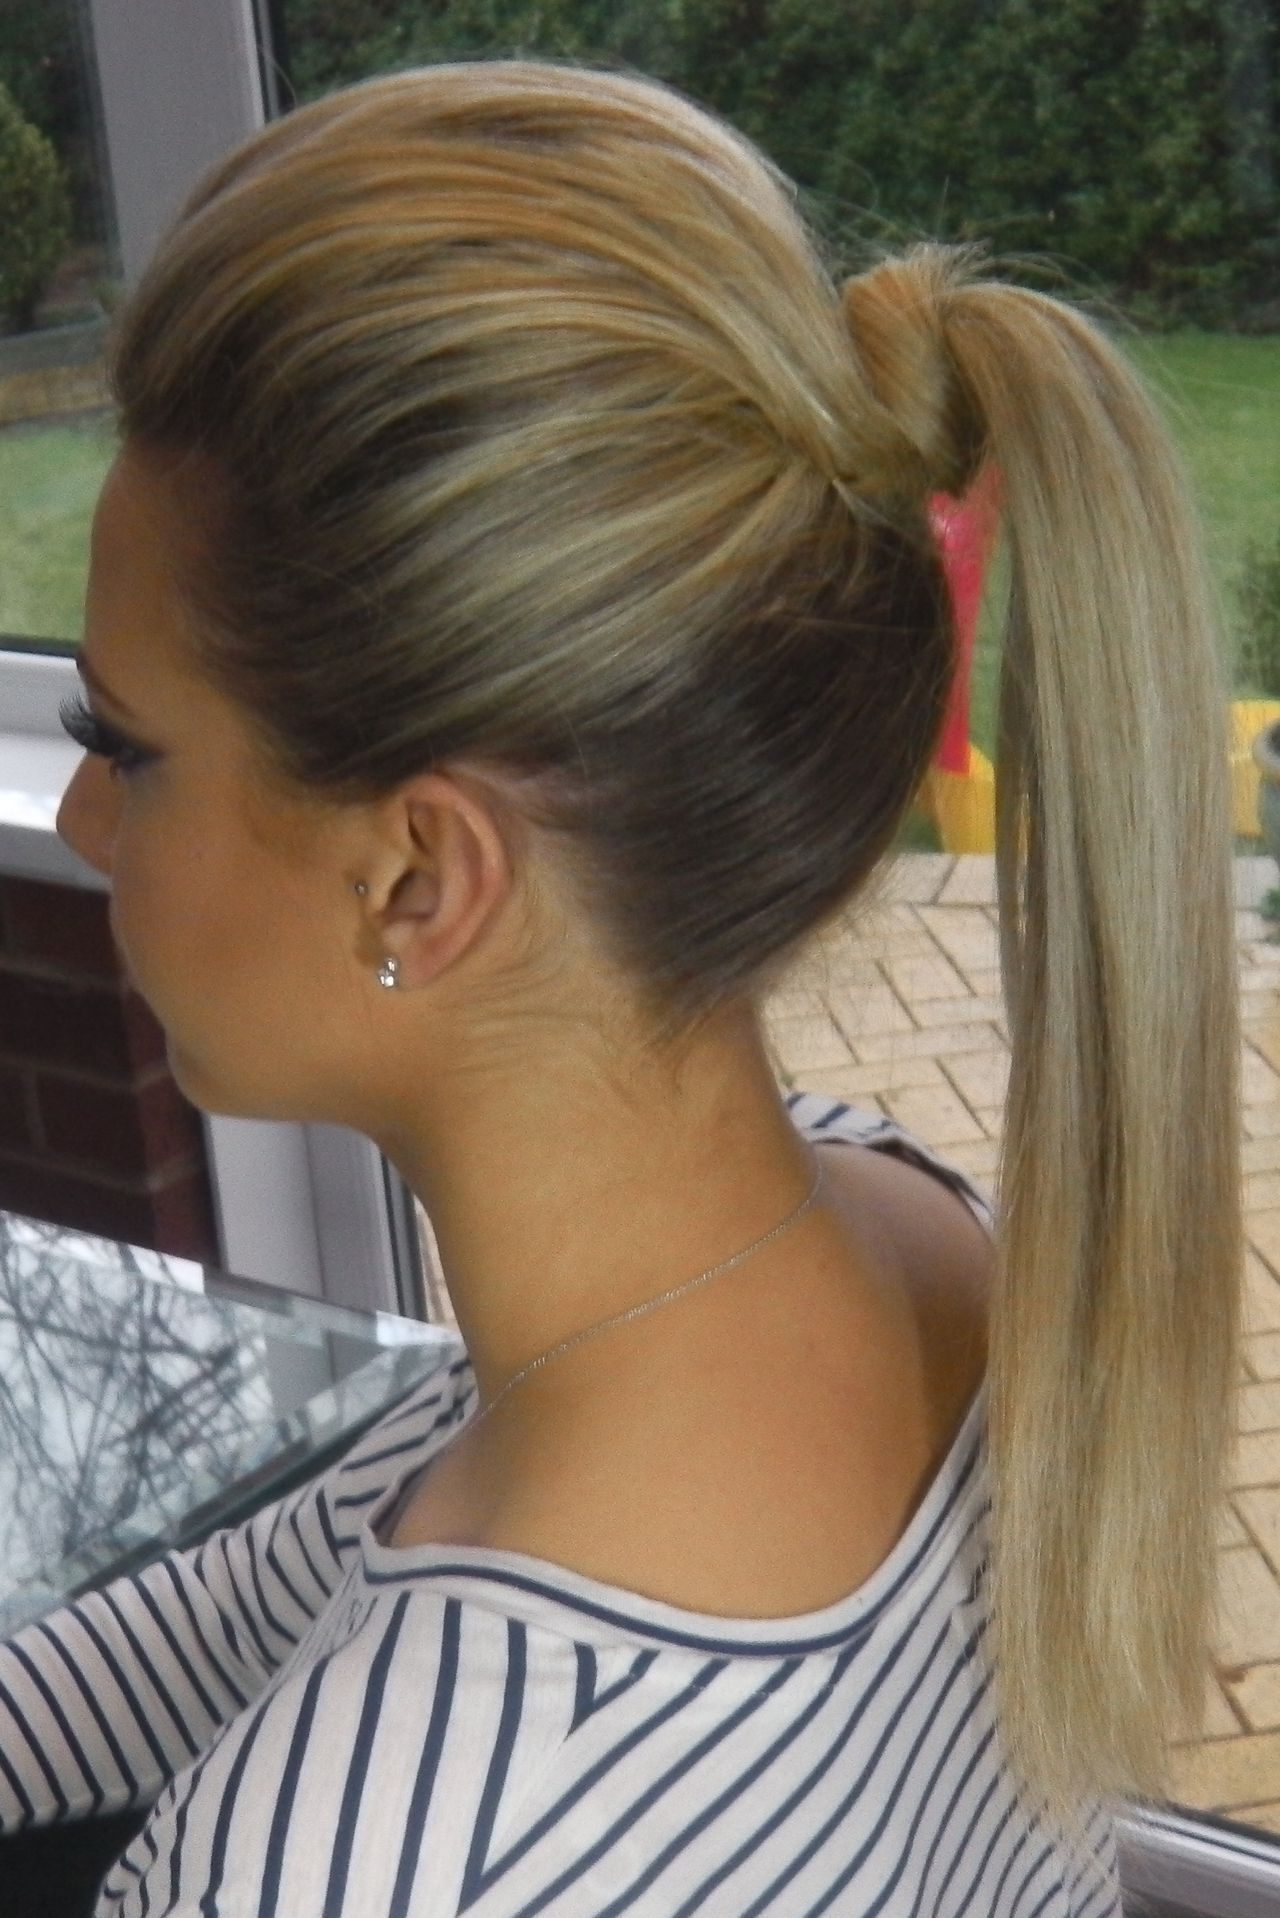 """Famous Long Blond Ponytail Hairstyles With Bump And Sparkling Clip In The """"barbie Ponytail"""" – The Knot Lifting The Pony & Volume Up Top (View 5 of 20)"""